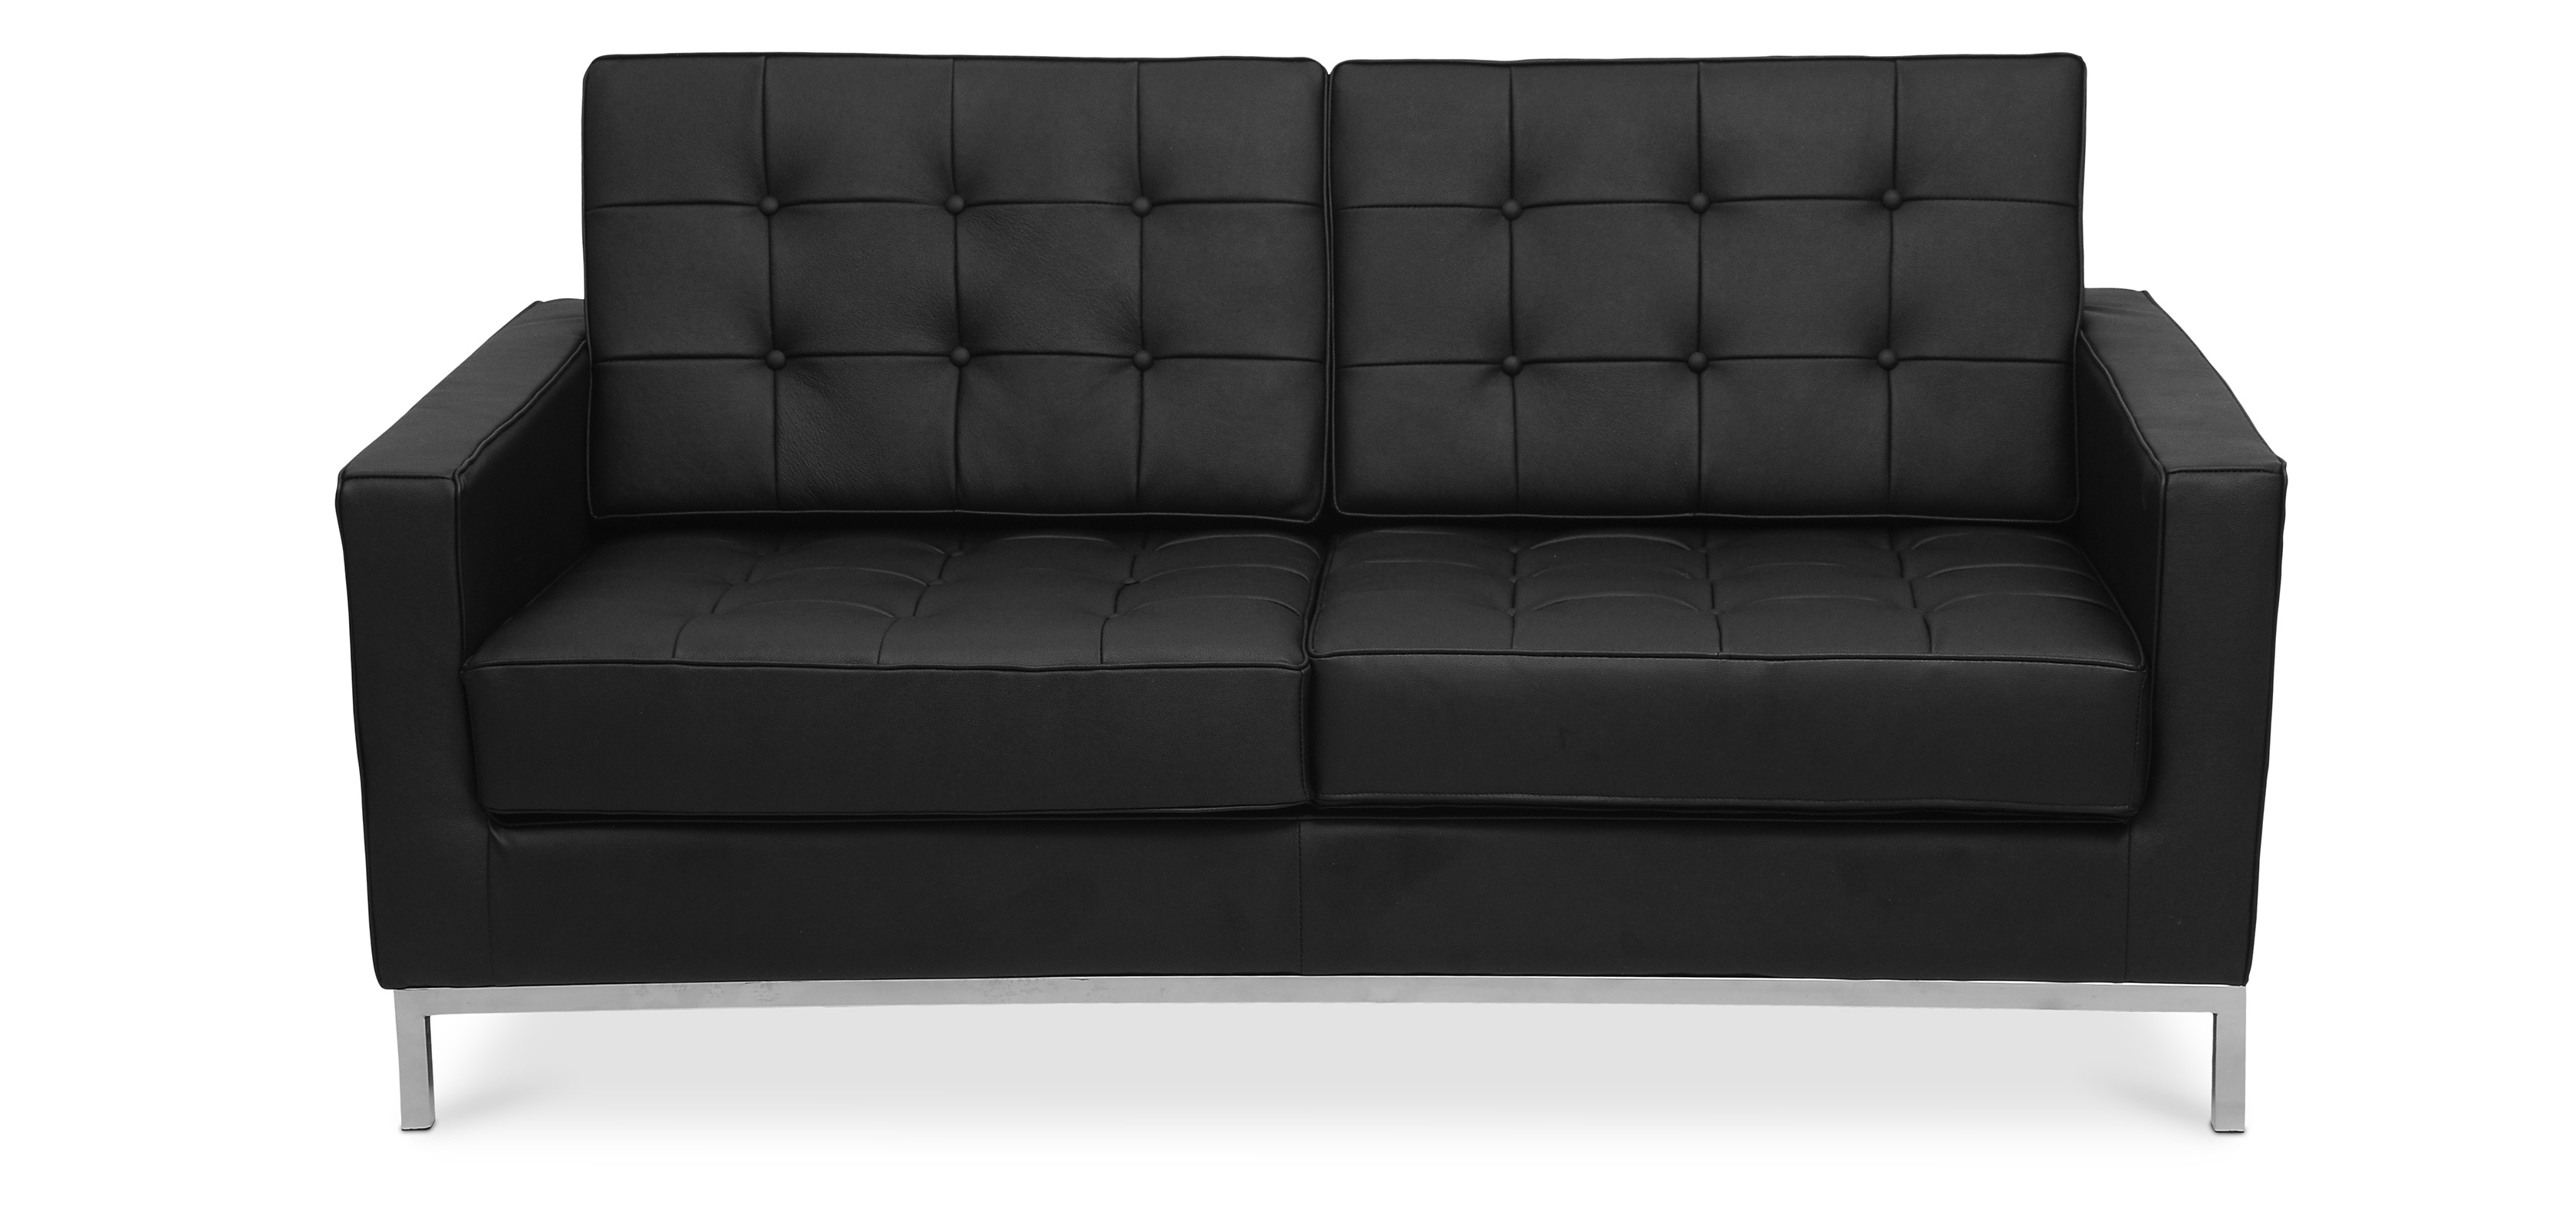 Canap 2 places style florence knoll cuir premium pas cher - Florence knoll canape ...